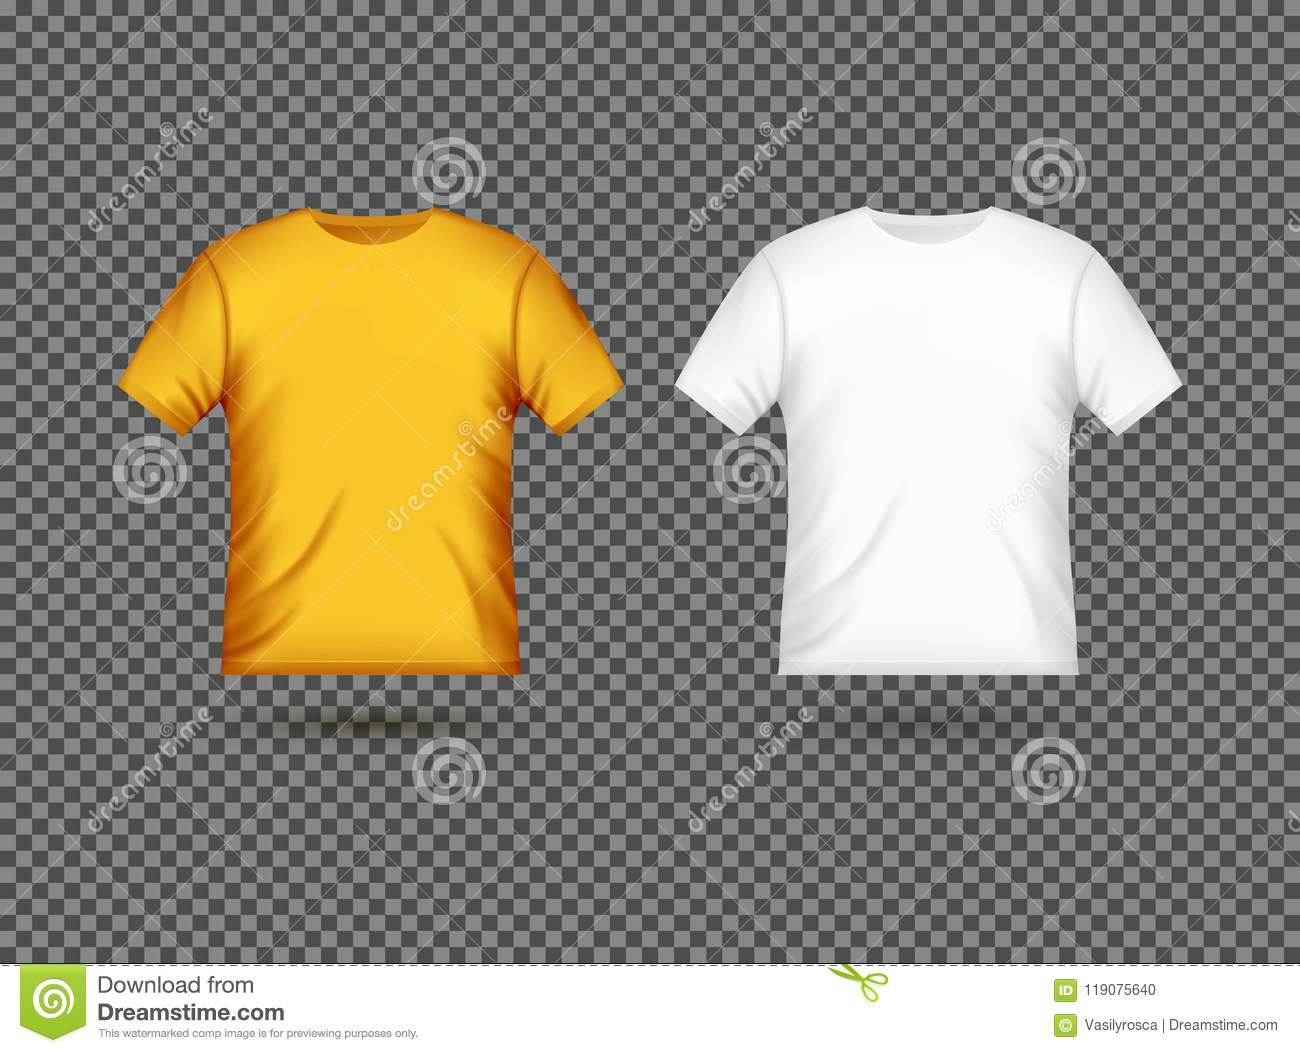 Blank T Shirt Template Clothing Fashion White And Yellow Design With Sleeve Cotton